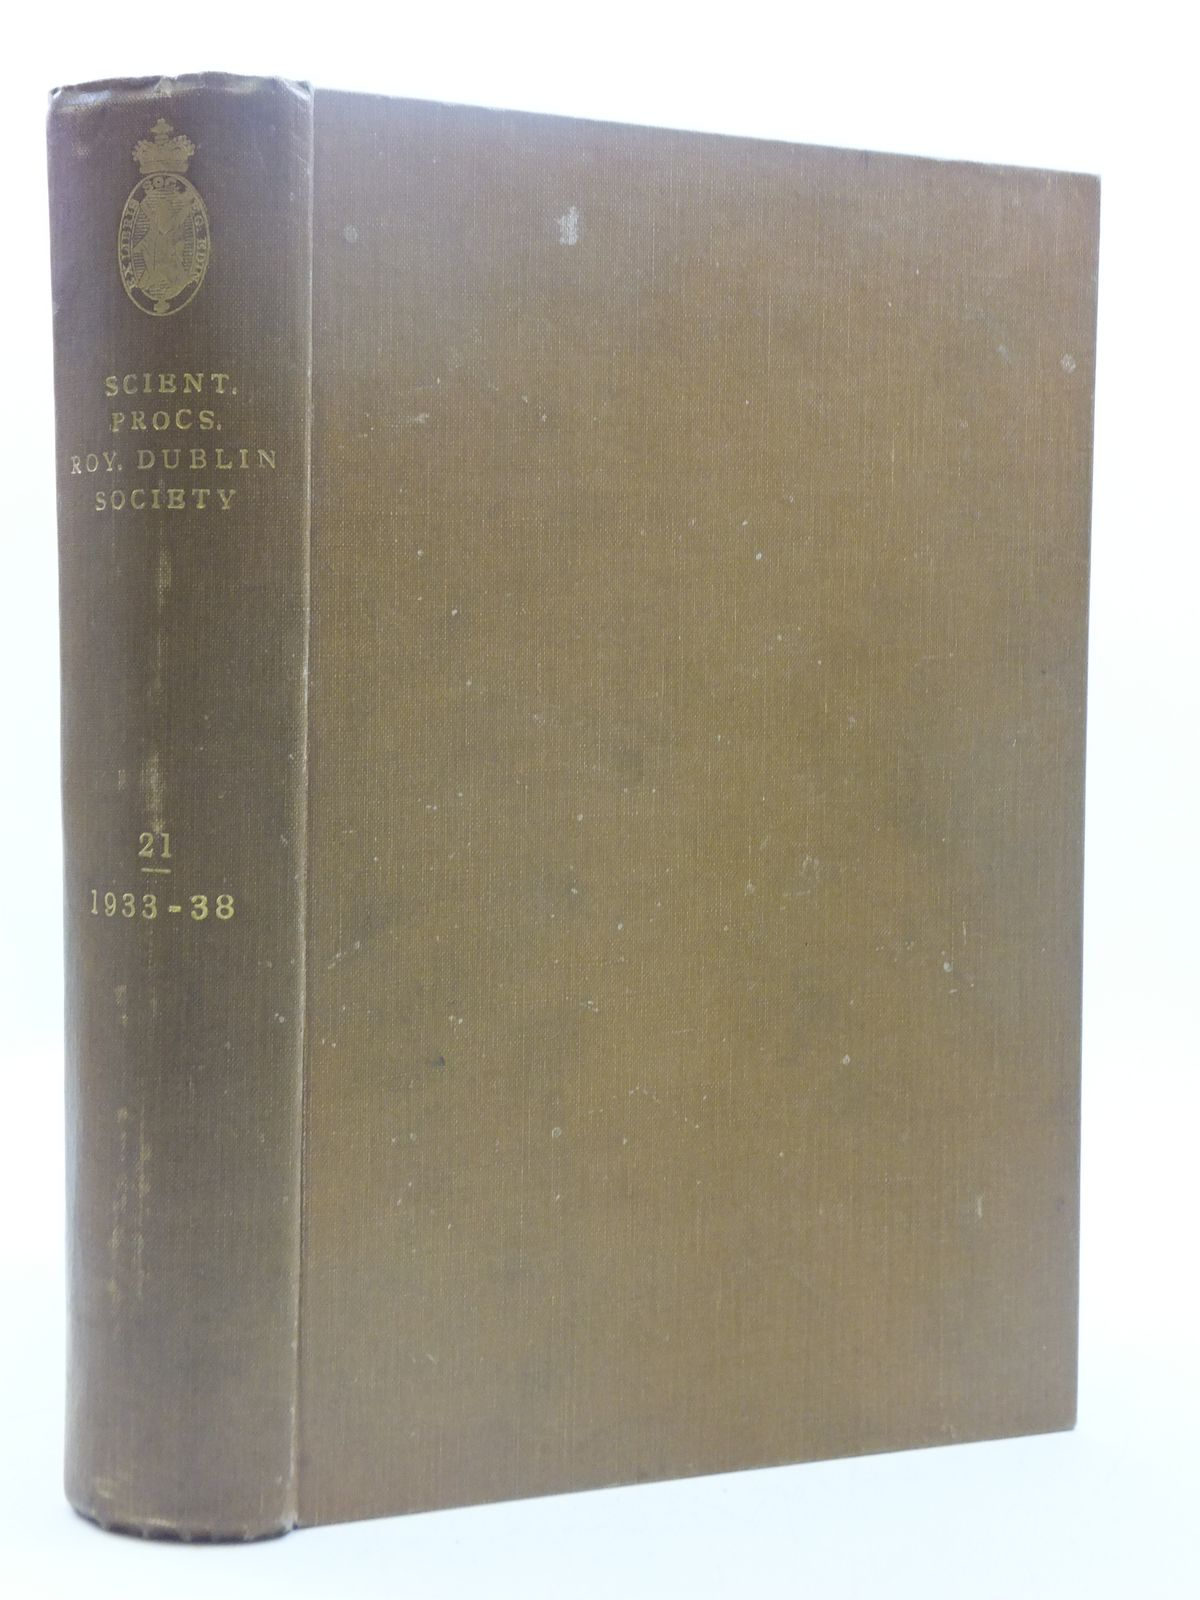 Photo of THE SCIENTIFIC PROCEEDINGS OF THE ROYAL DUBLIN SOCIETY VOLUME 21 (1933-1938)